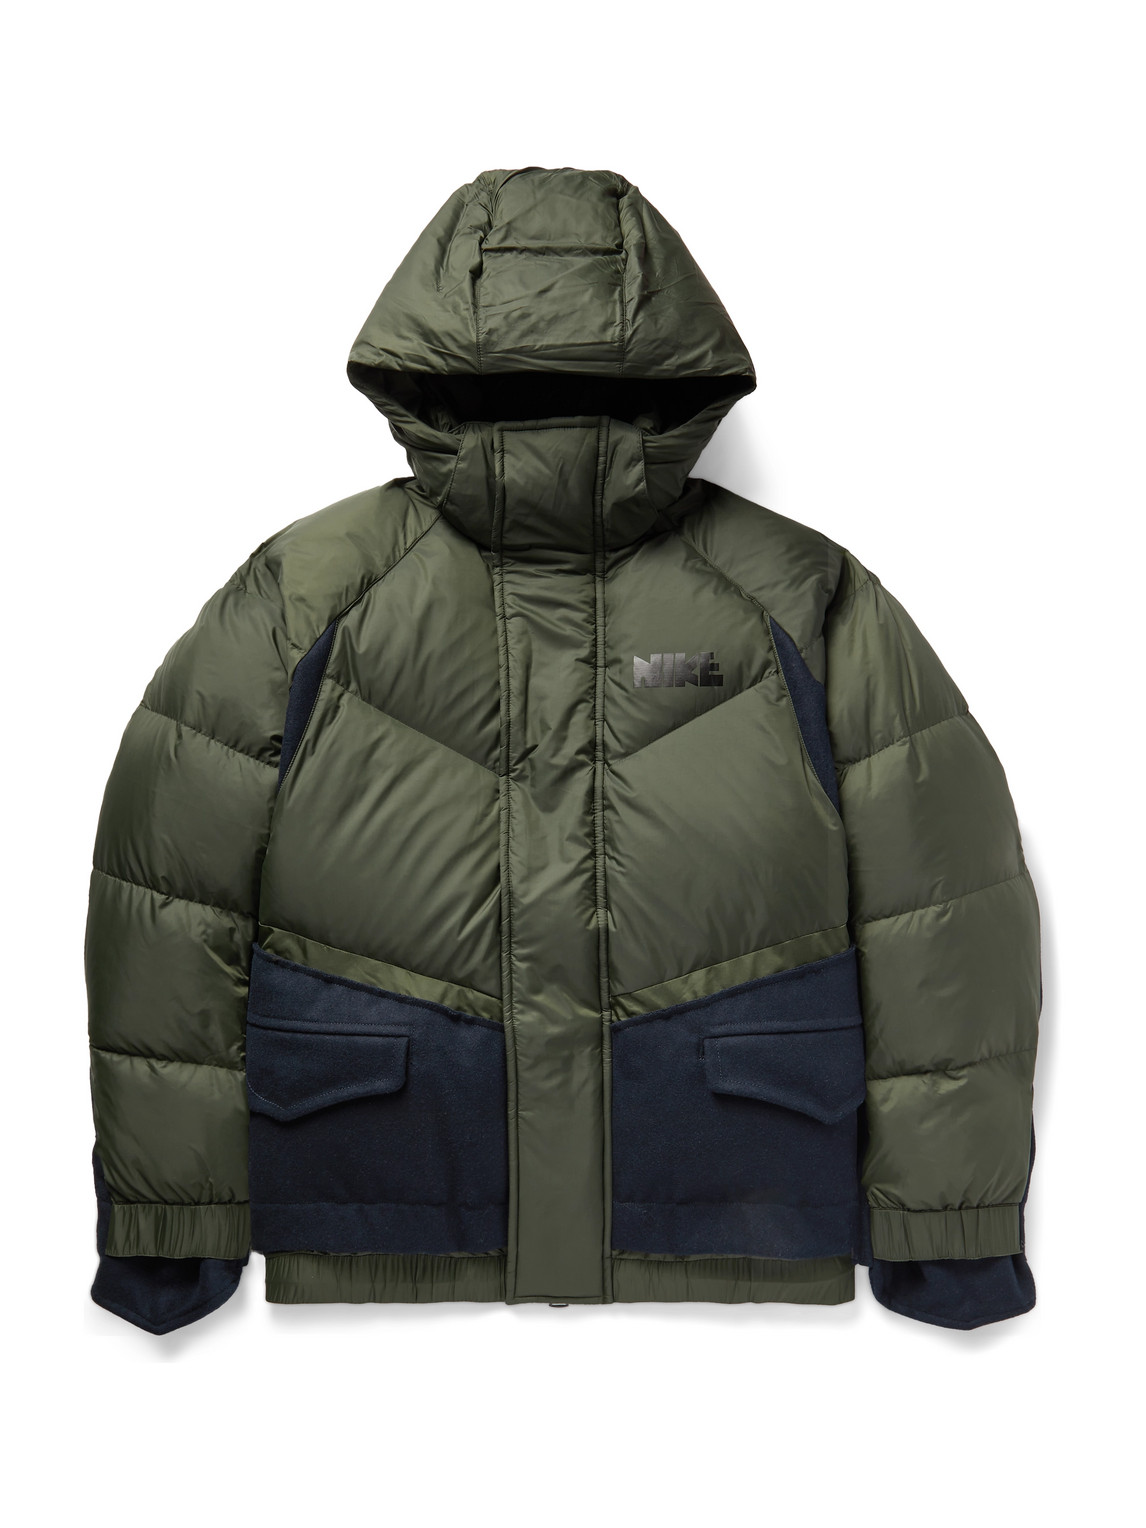 Nike - Sacai Nrg Logo-Print Quilted Nylon And Wool-Blend Down Hooded Parka - Men - Green - Xs